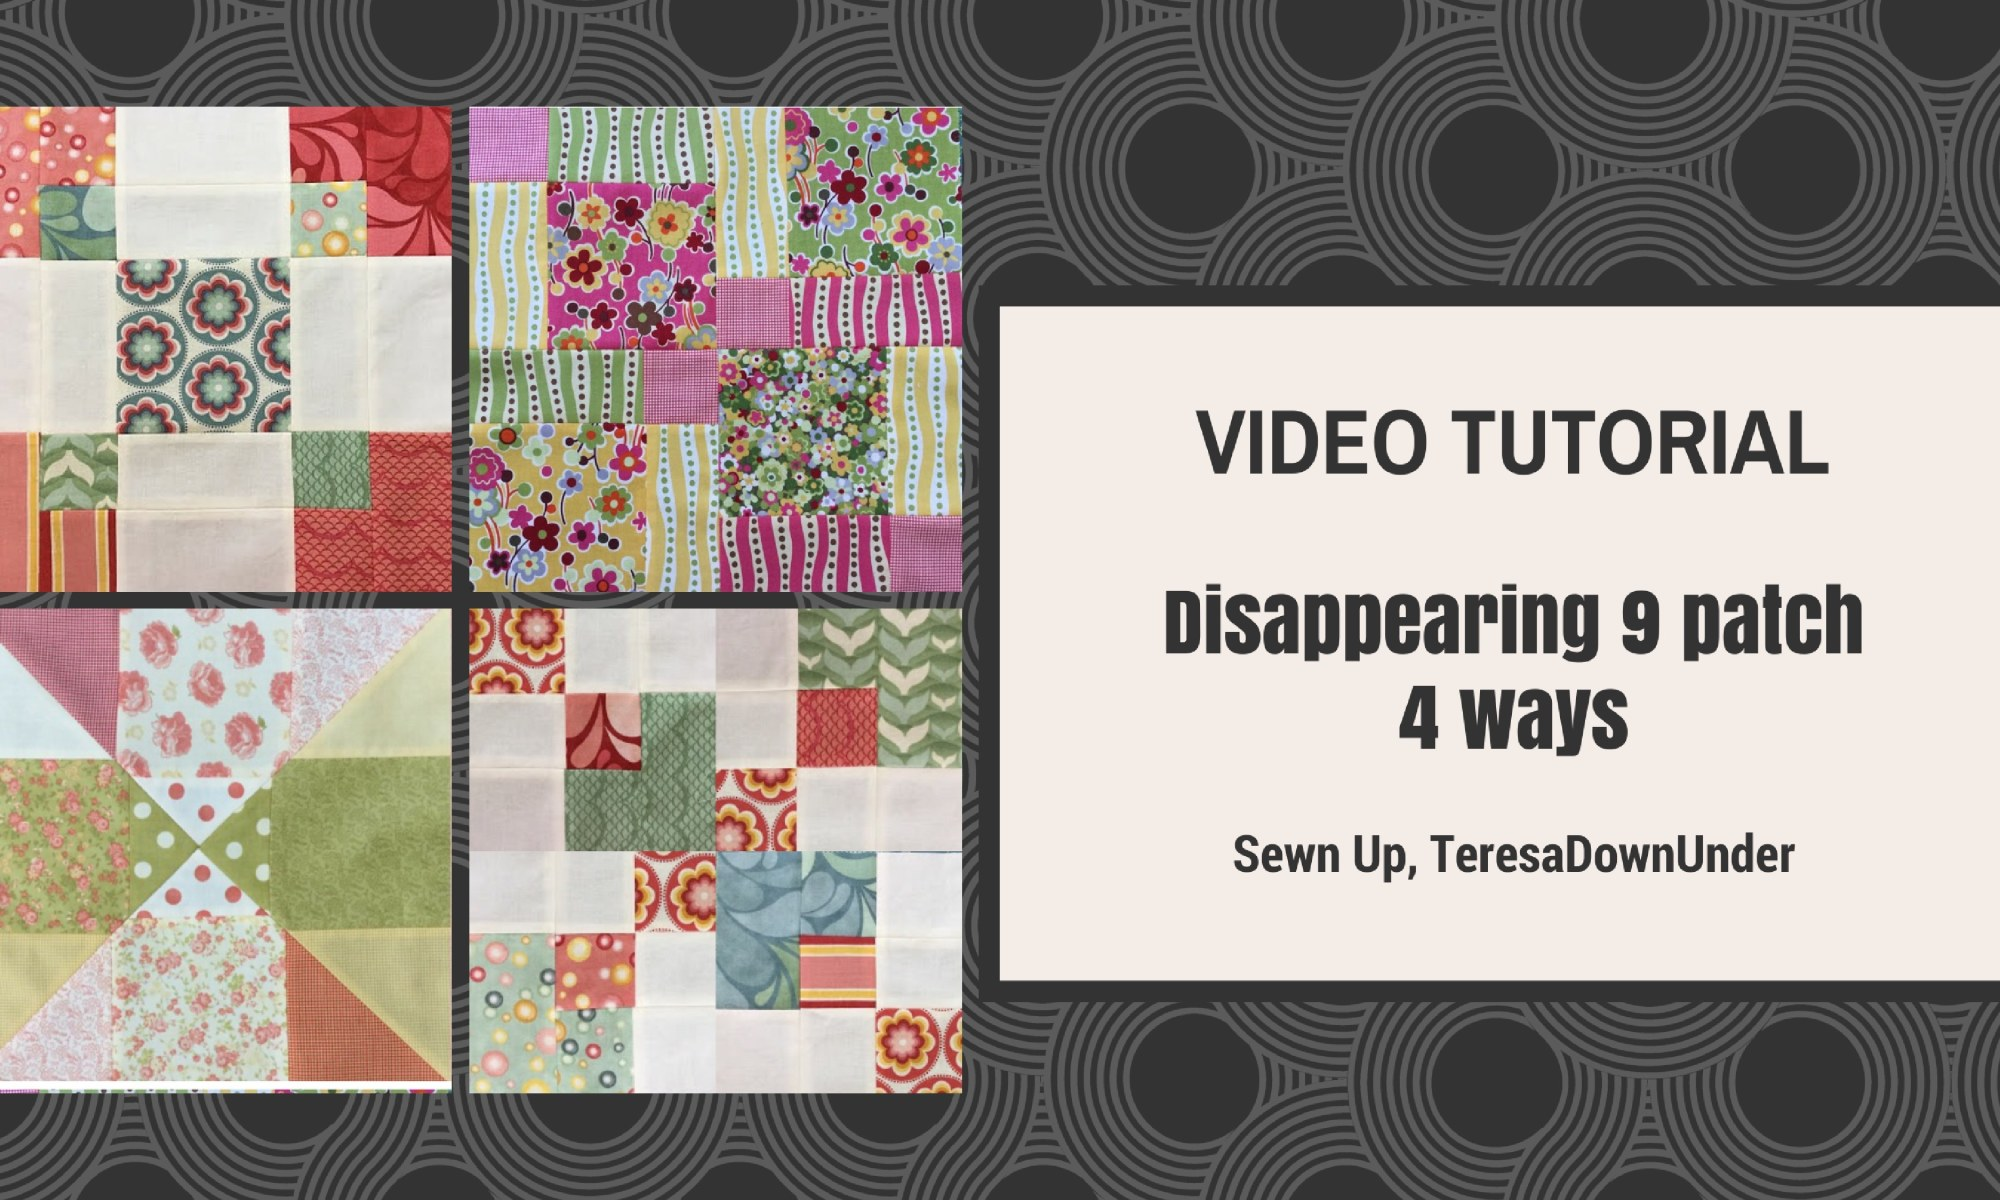 Disappearing 9 patch 4 ways - video tutorial